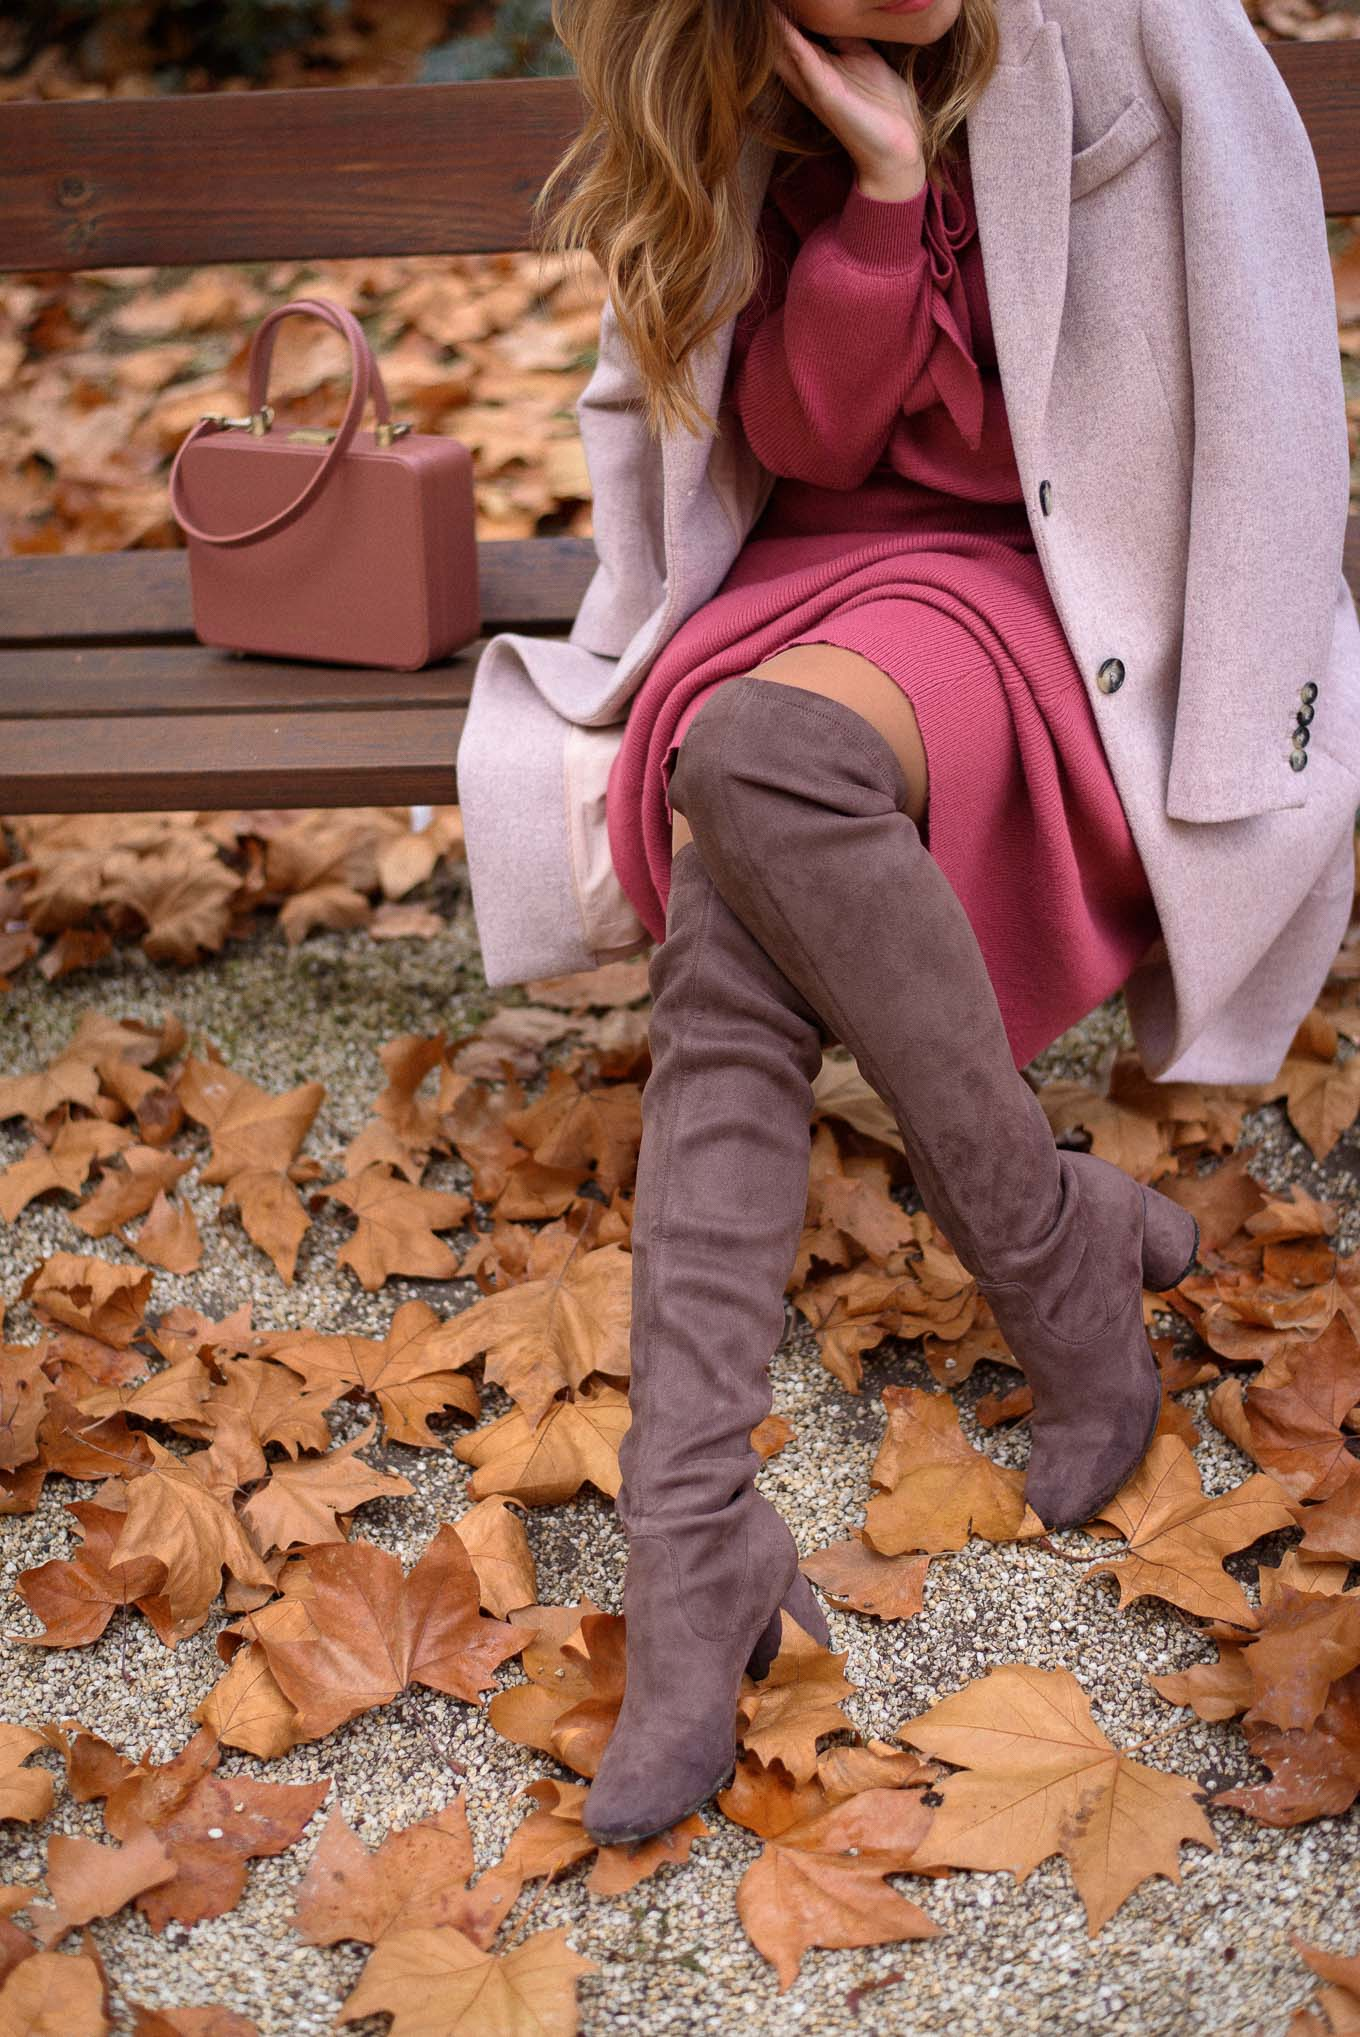 Wearing punto tosca blu boots